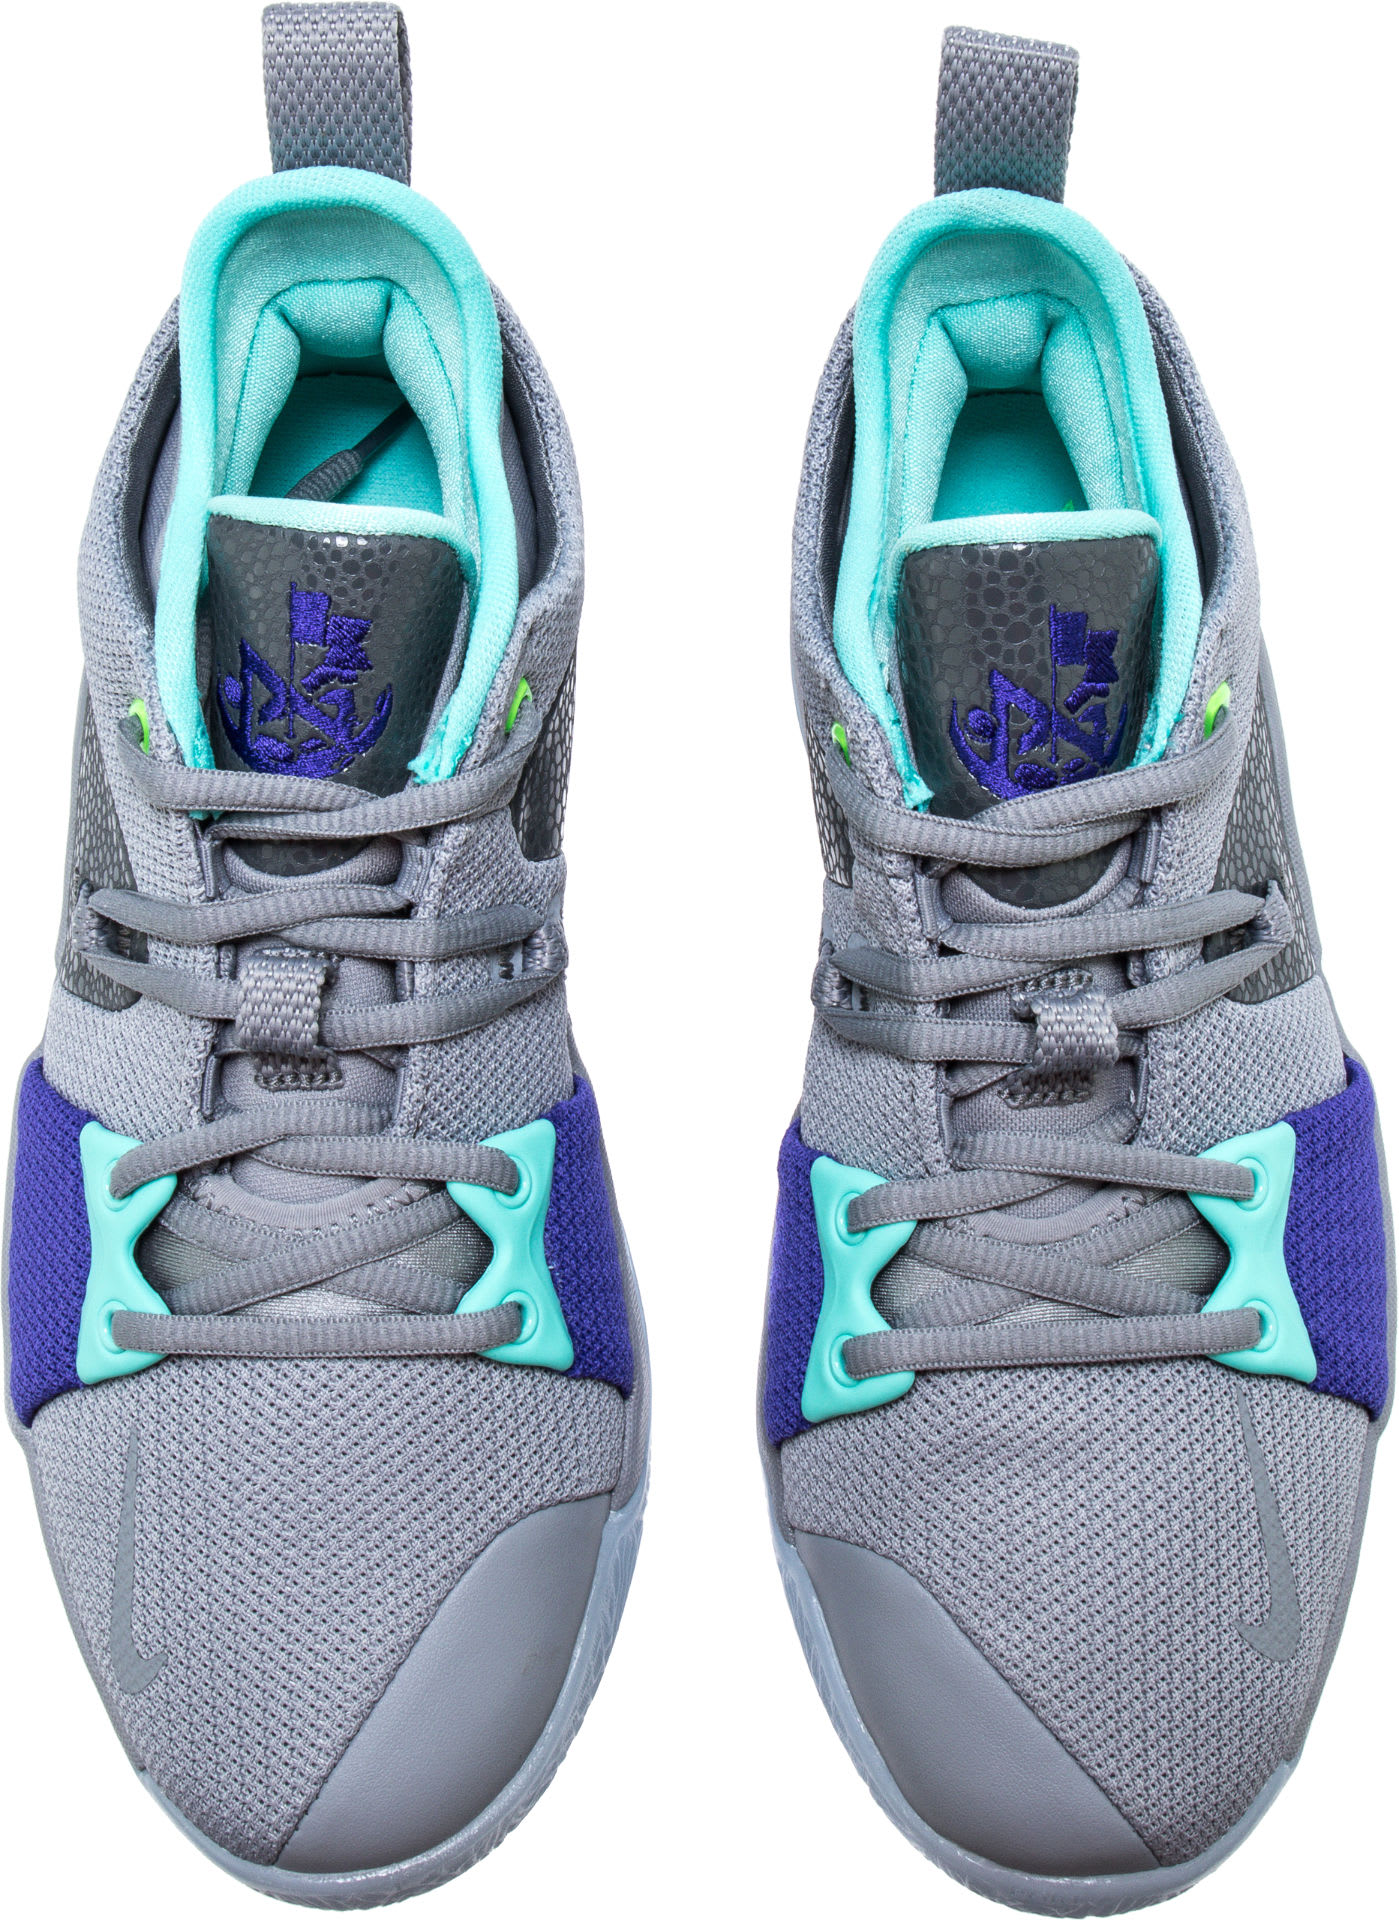 Nike PG2 Pure Platinum Neo Turquoise Wolf Grey Aurora Green Release Date AJ2039-002 Top